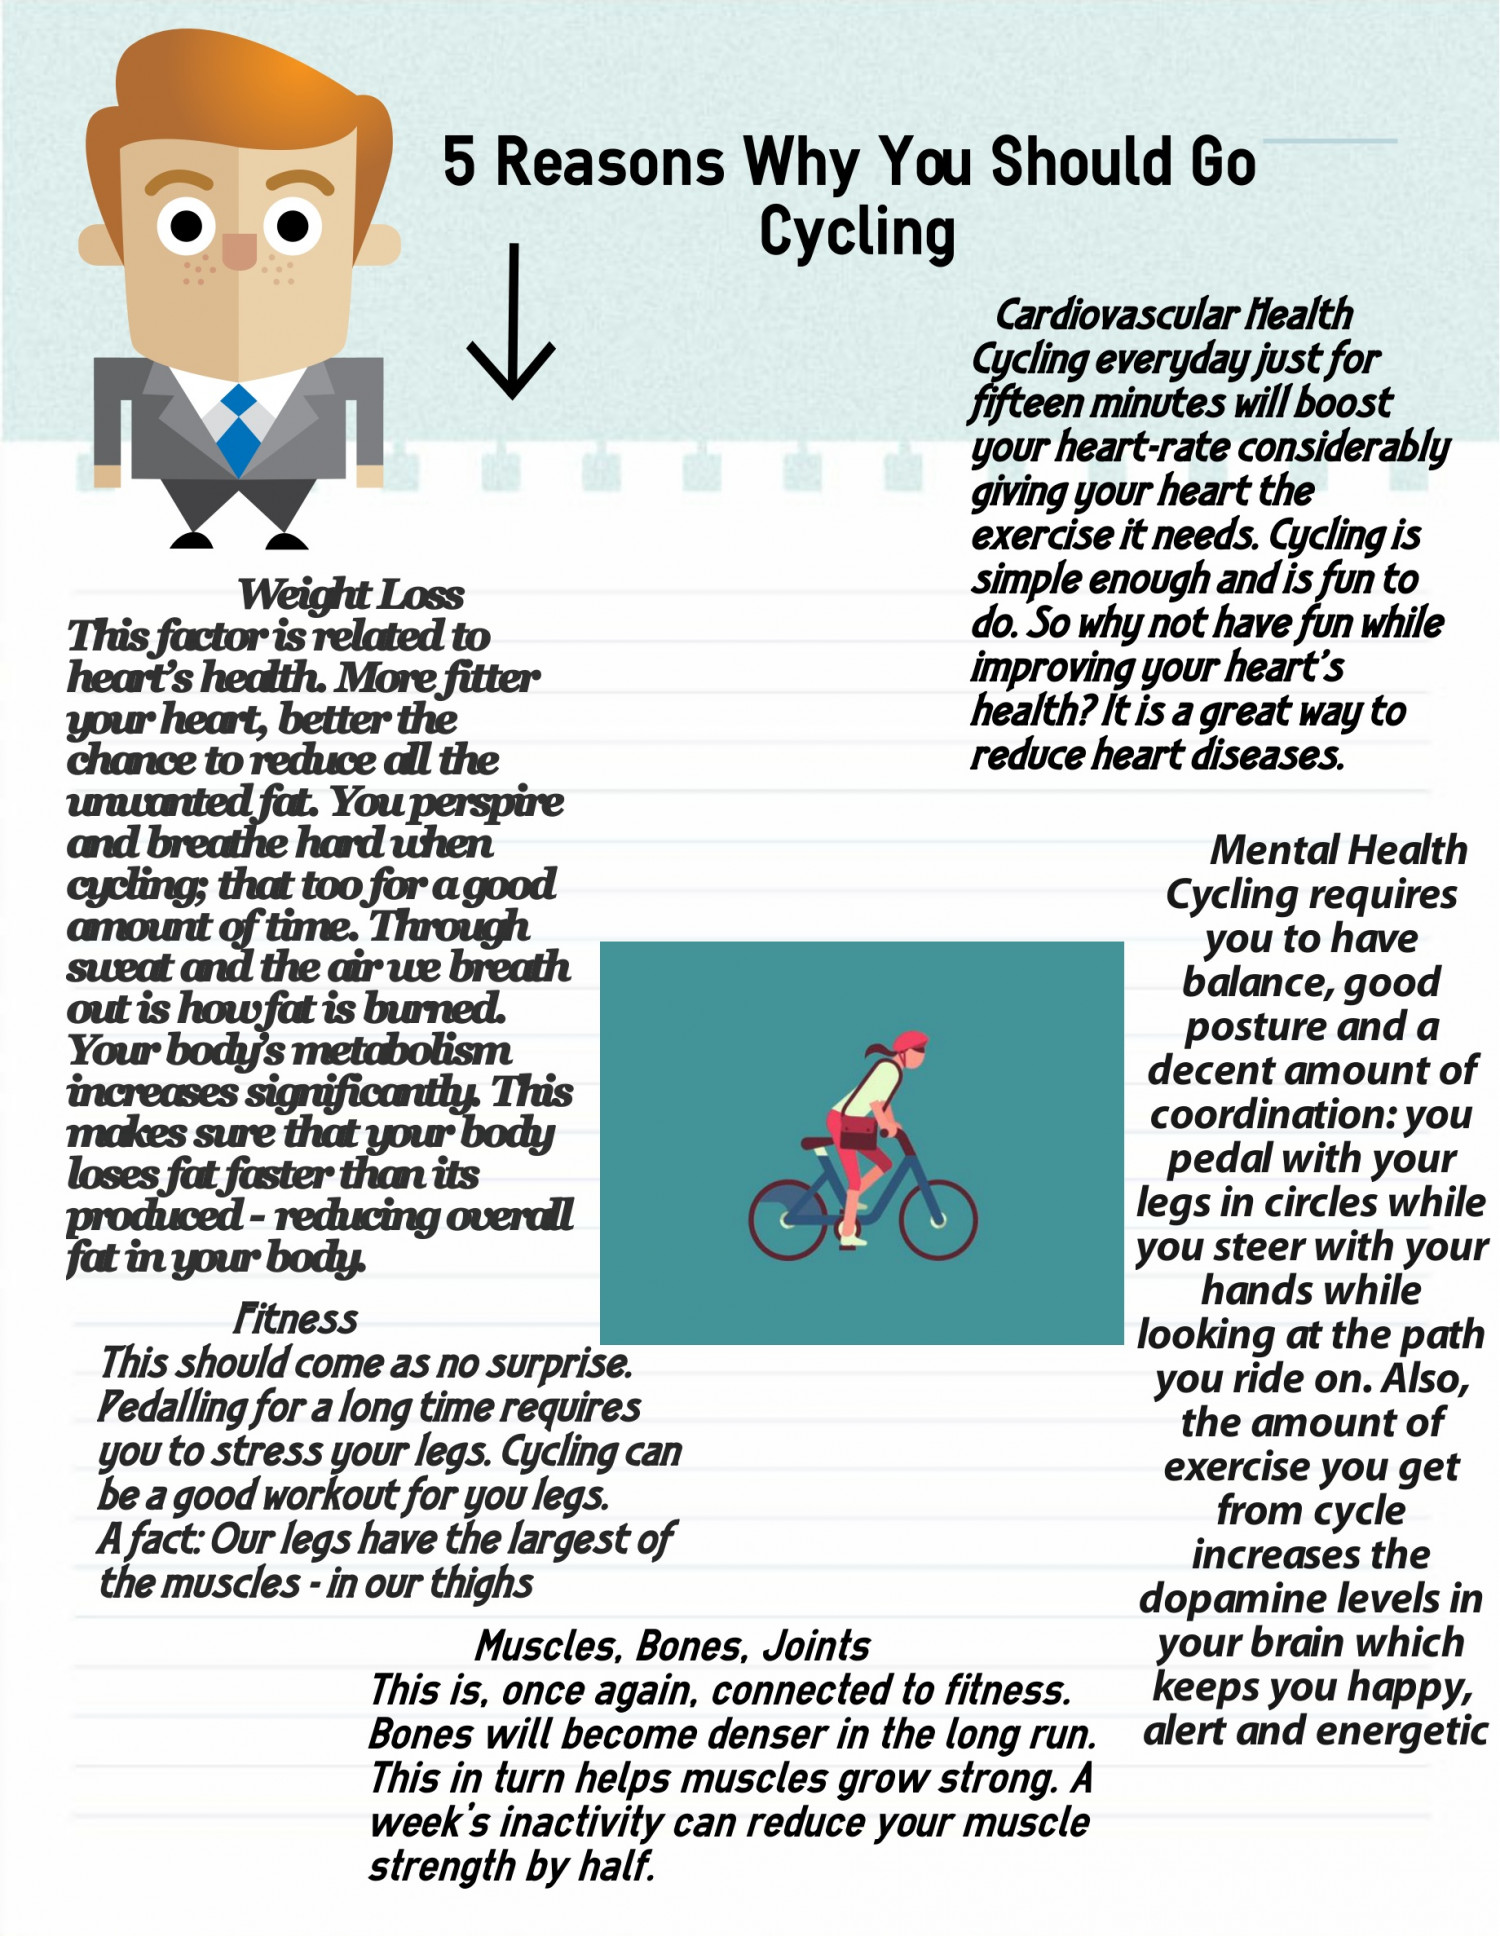 5 Reasons Why You Should Go Cycling Infographic